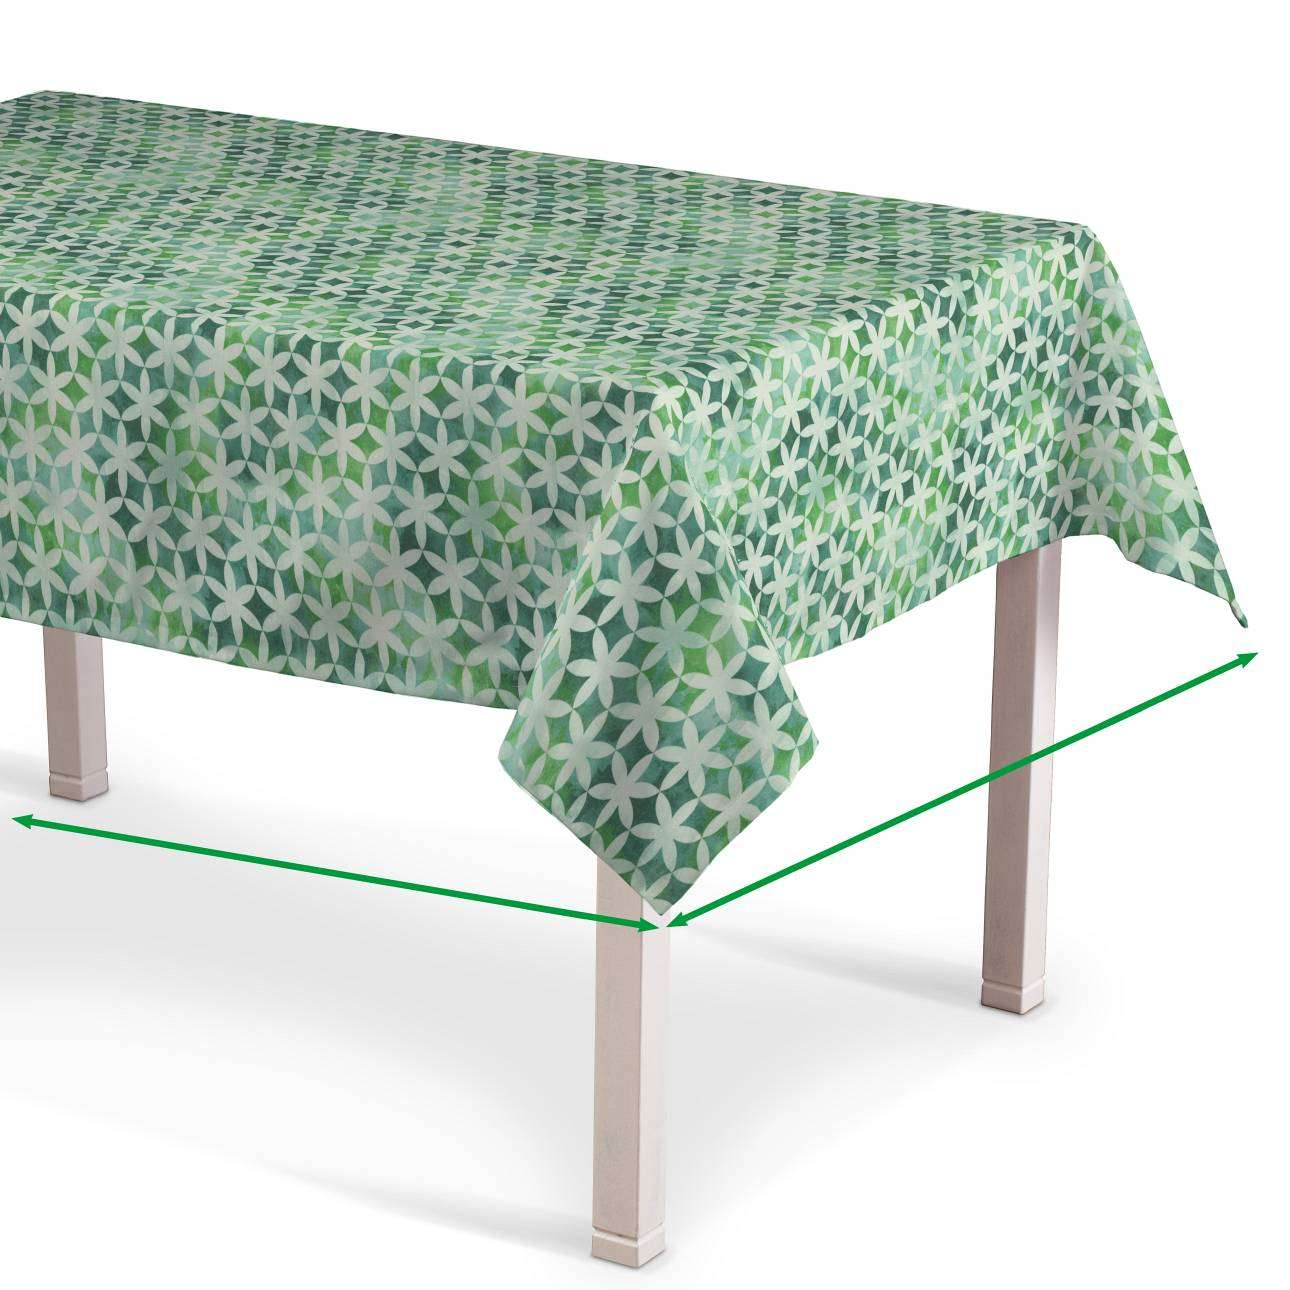 Rectangular tablecloth in collection Urban Jungle, fabric: 141-65